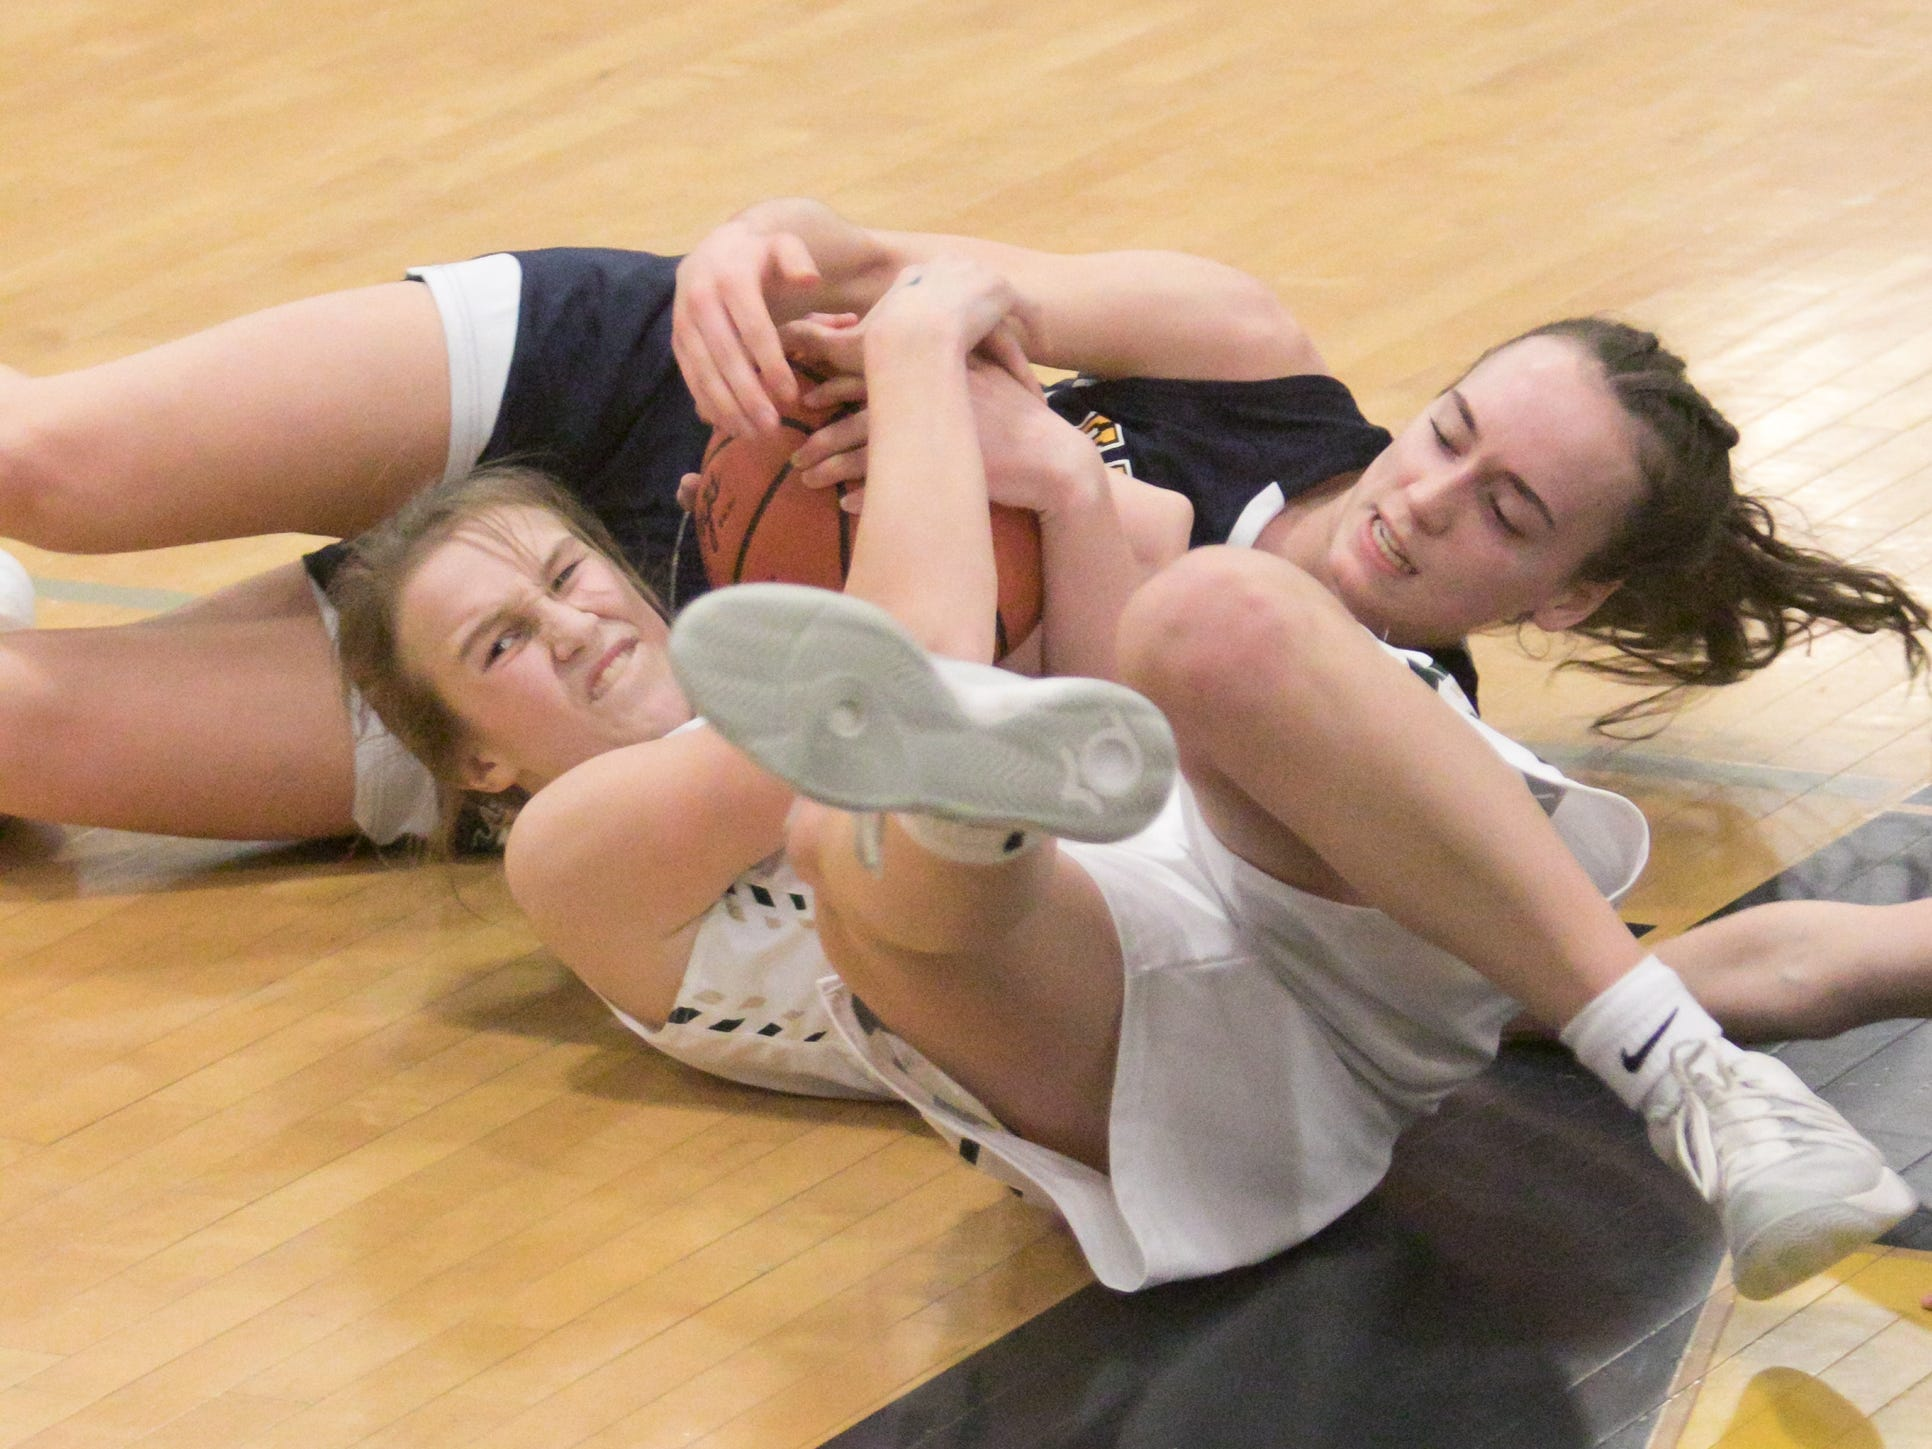 Howell's Allison Pennala, with head to left, and Hartland's Madi Moyer grapple for the ball in the district championship game Friday, March 8, 2019.